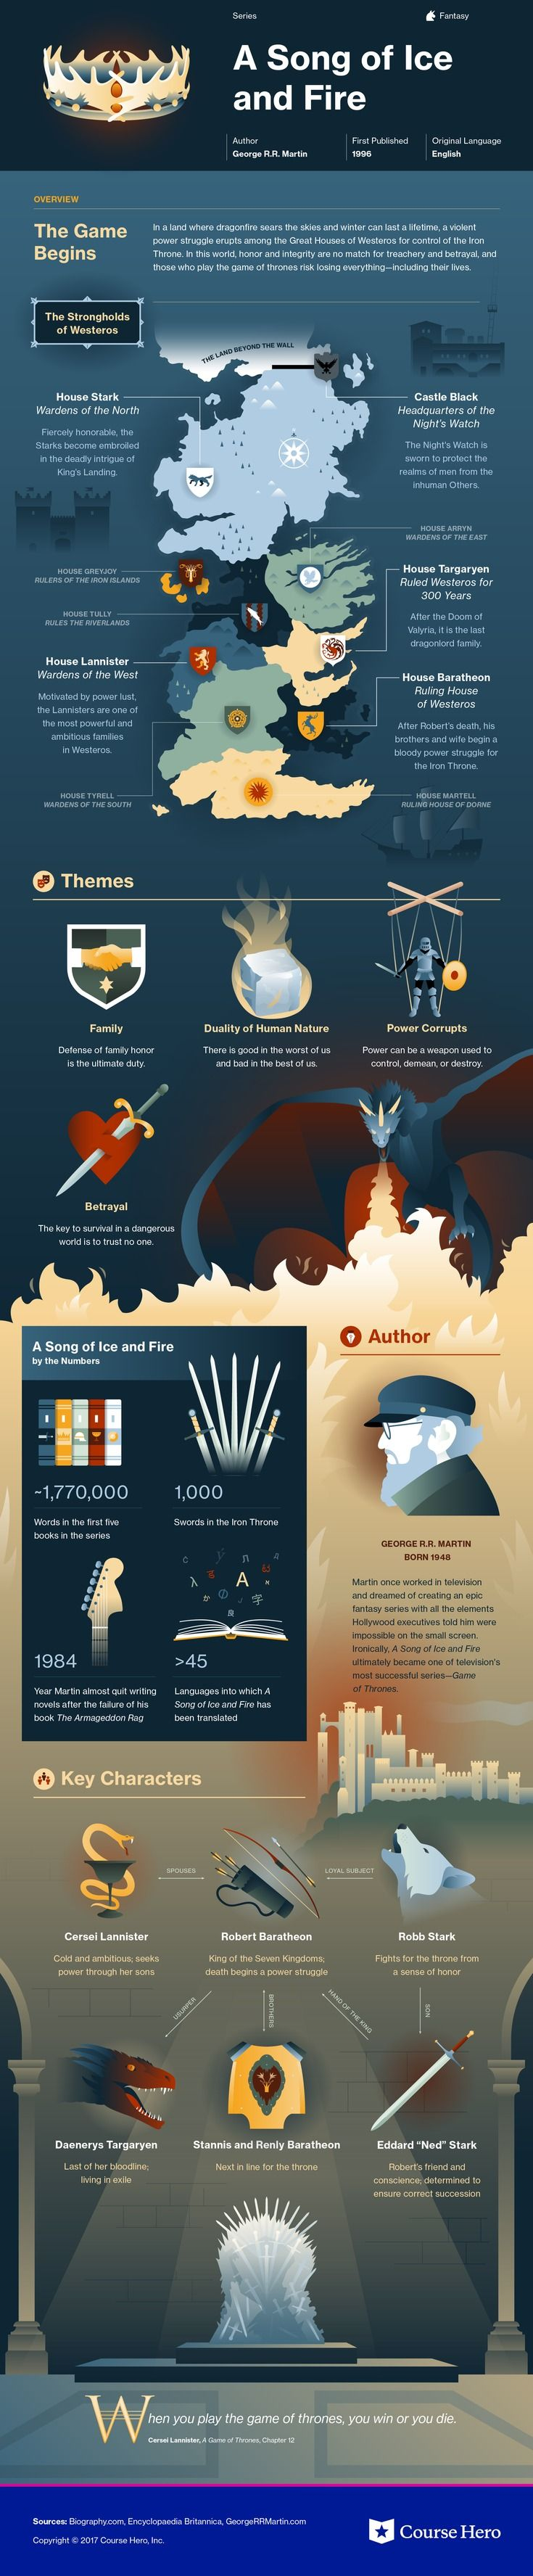 Check out this infographic for George R.R. Martin's A Song of Ice and Fire (Game of Thrones, GoT)